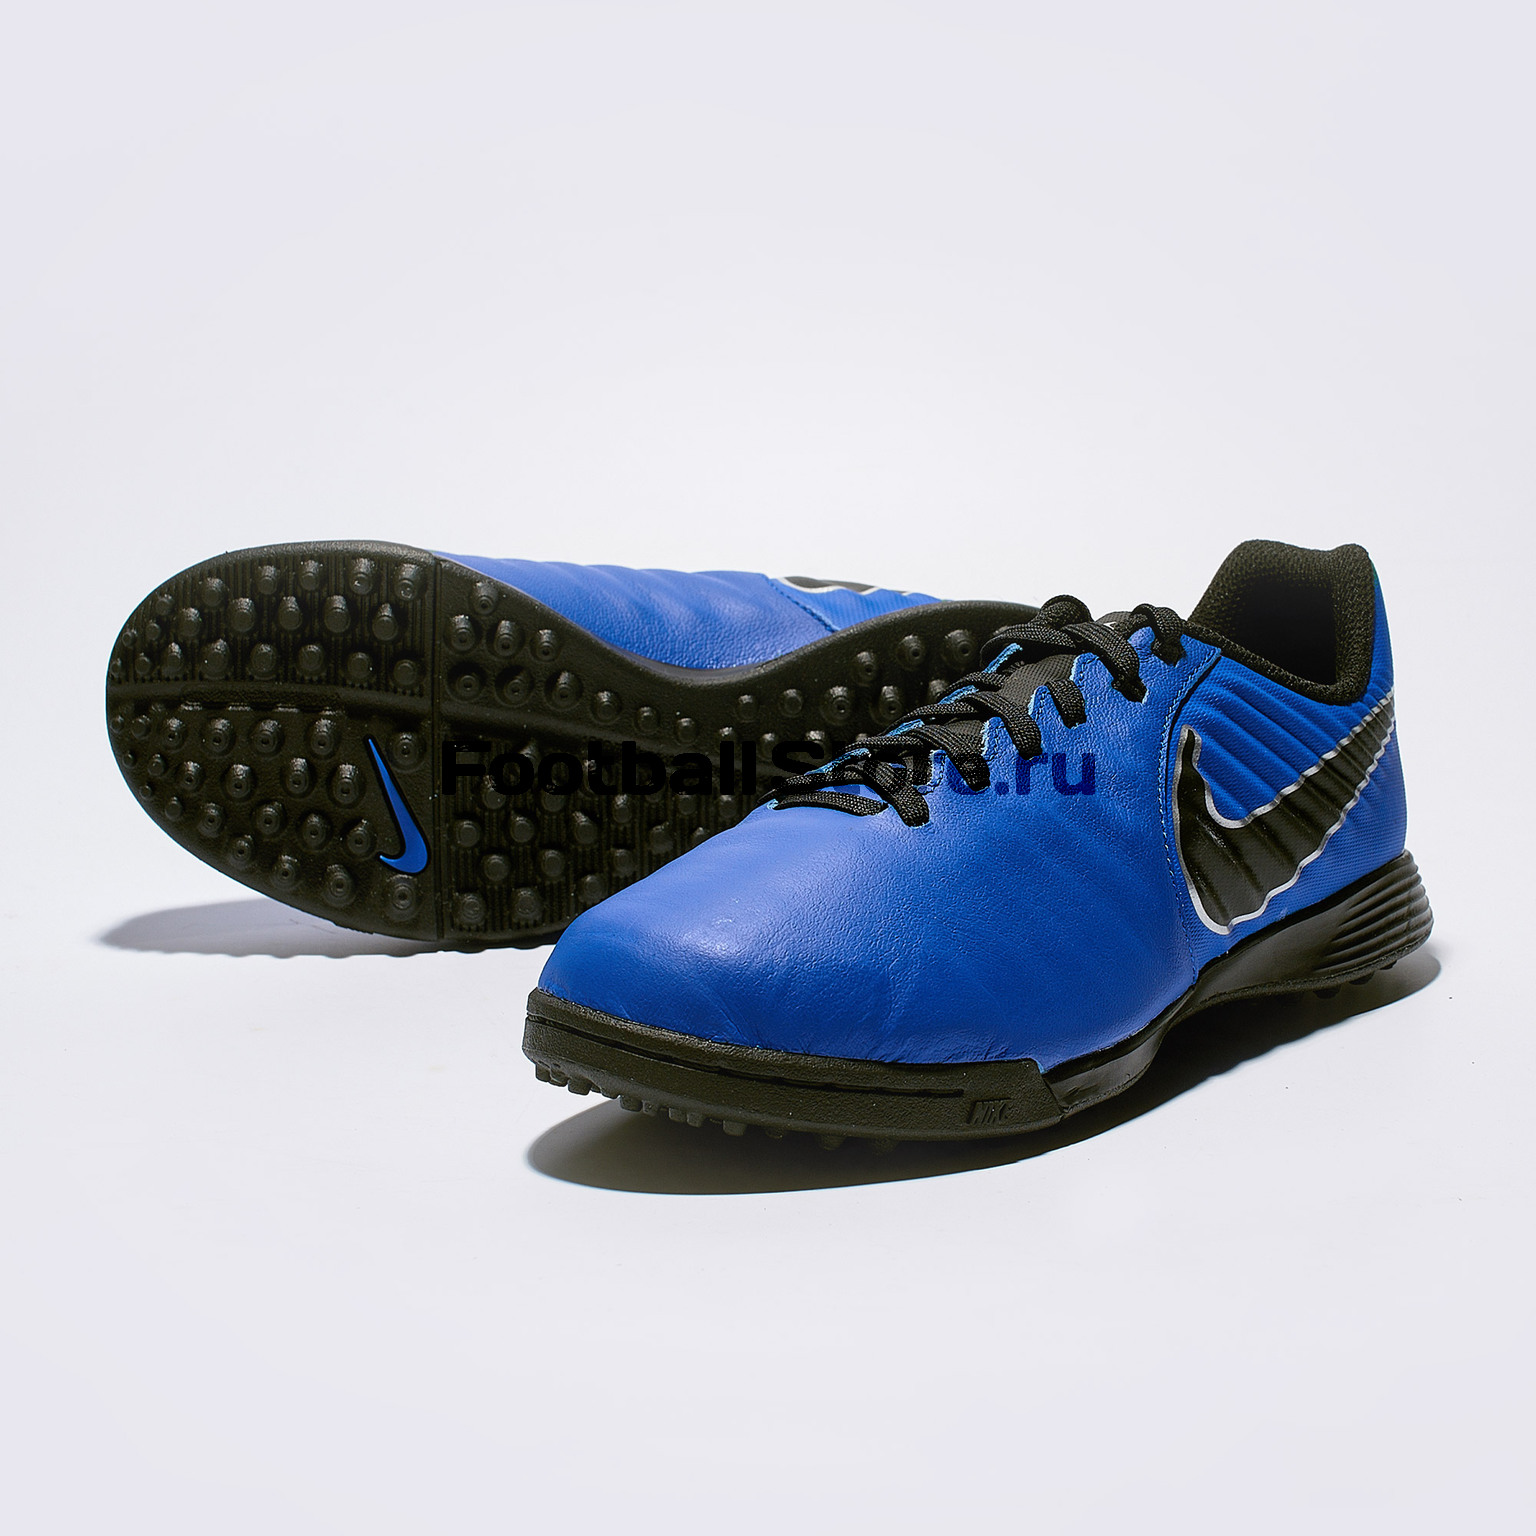 Шиповки детские Nike Legend X Academy TF AH7259-400 bt sport minimum broadband speed